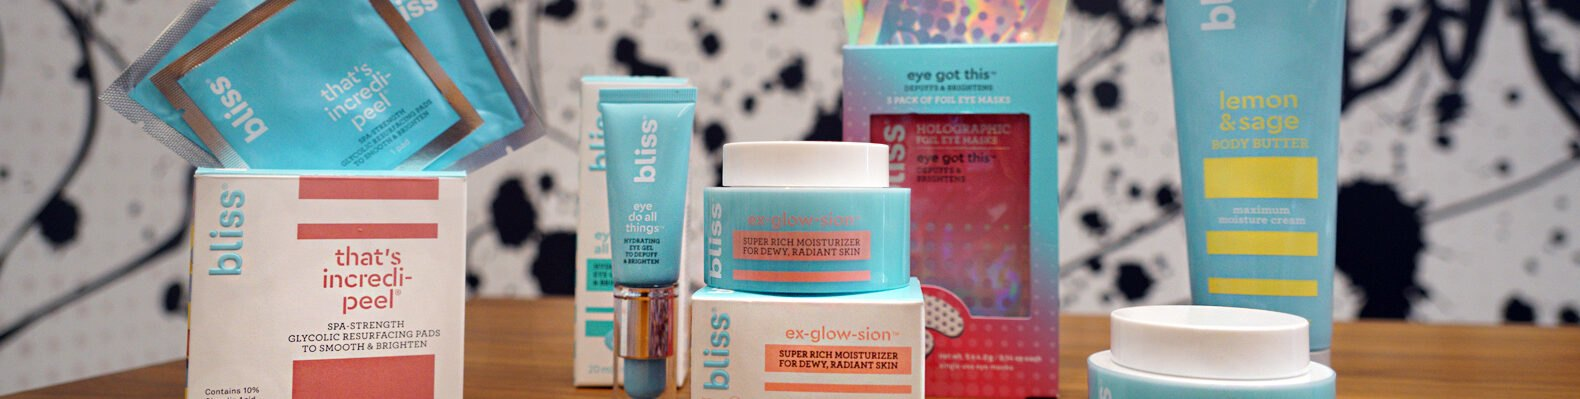 skincare products in pink and blue packages